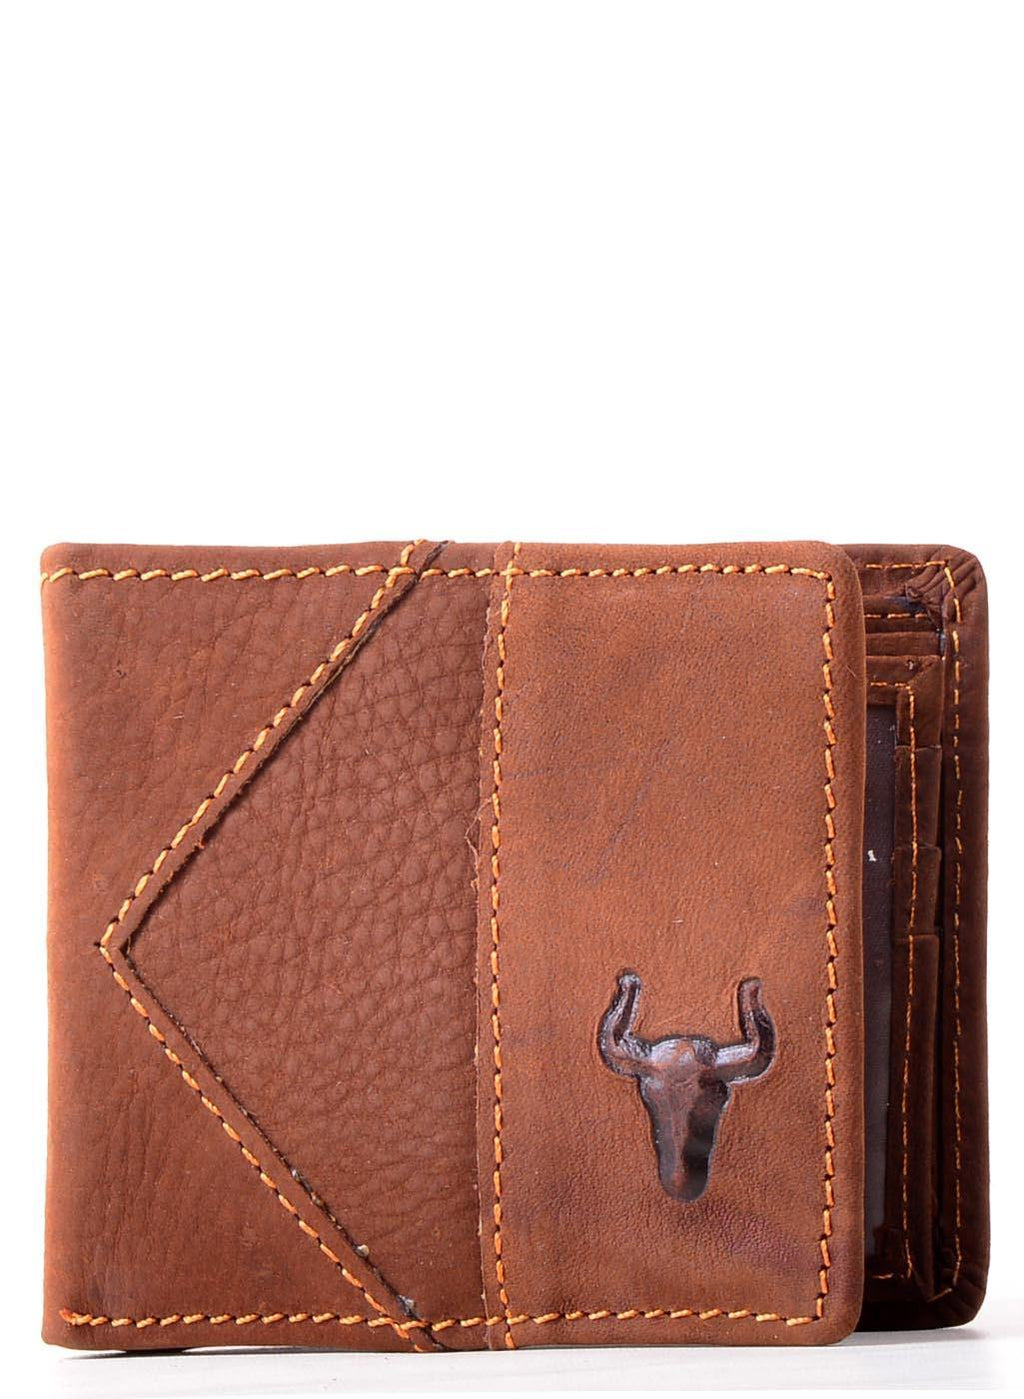 EthniCache Wallet Suave Handmade Pure Leather Wallet